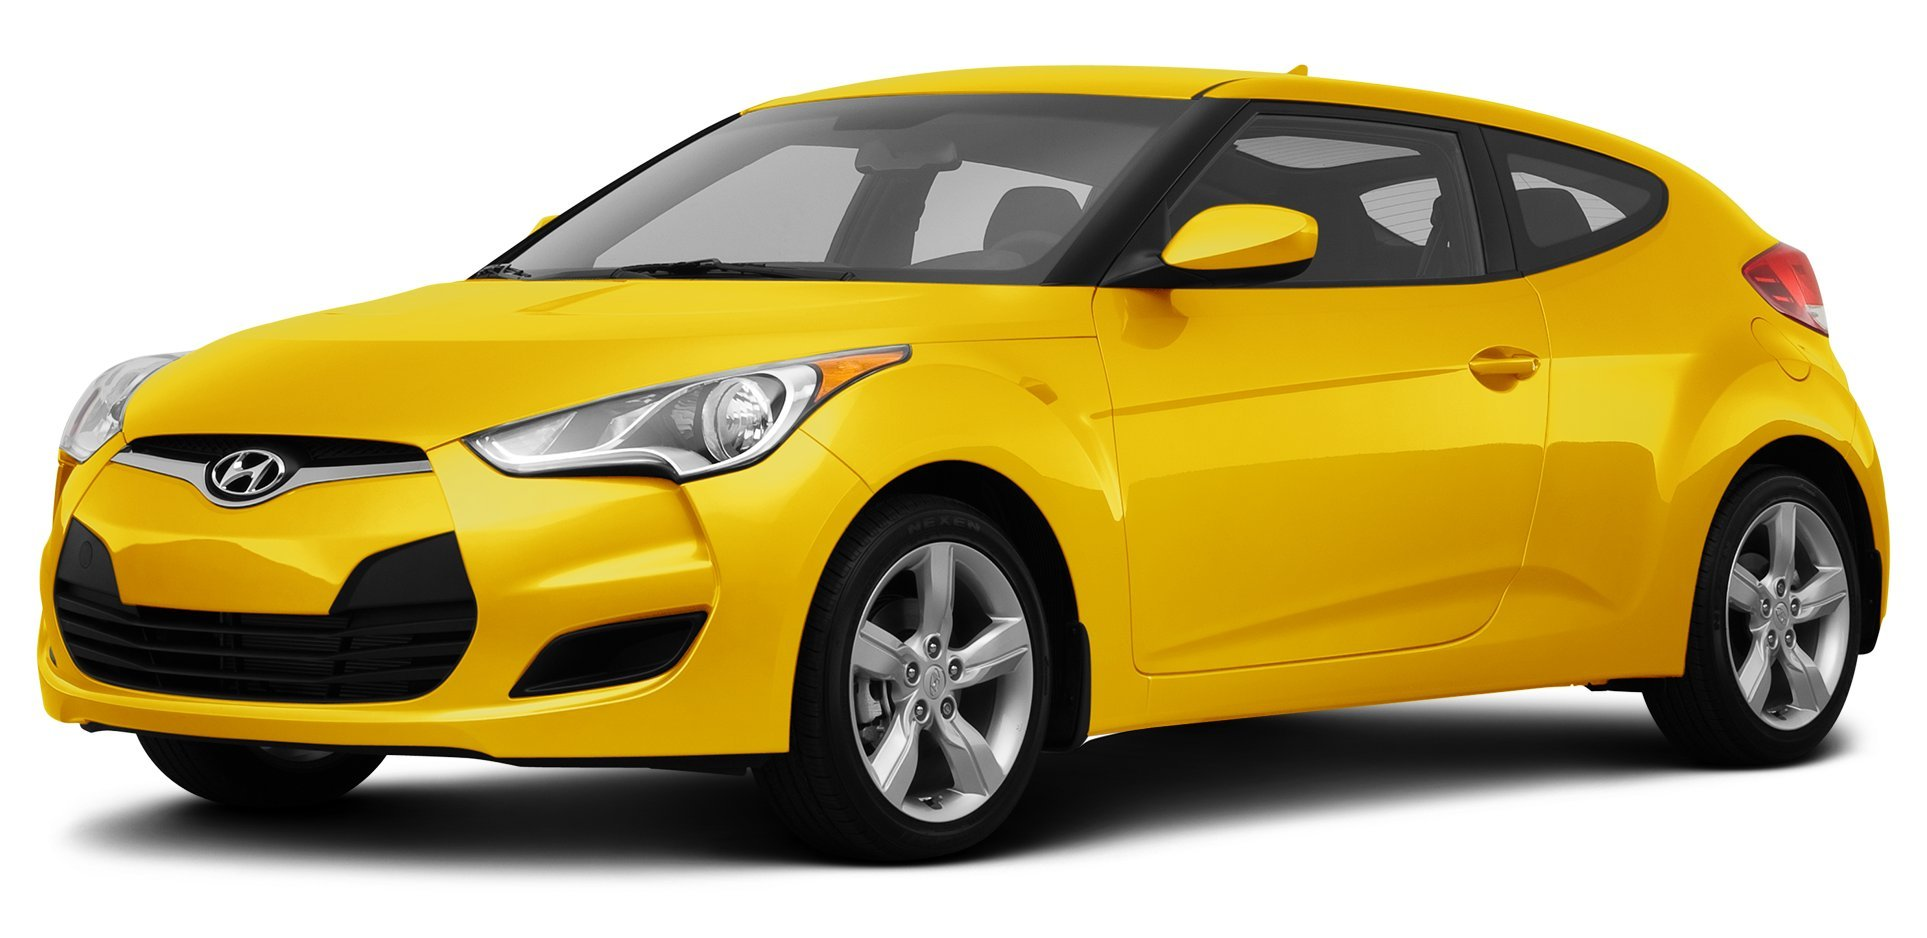 2013 hyundai veloster reviews images and specs vehicles. Black Bedroom Furniture Sets. Home Design Ideas